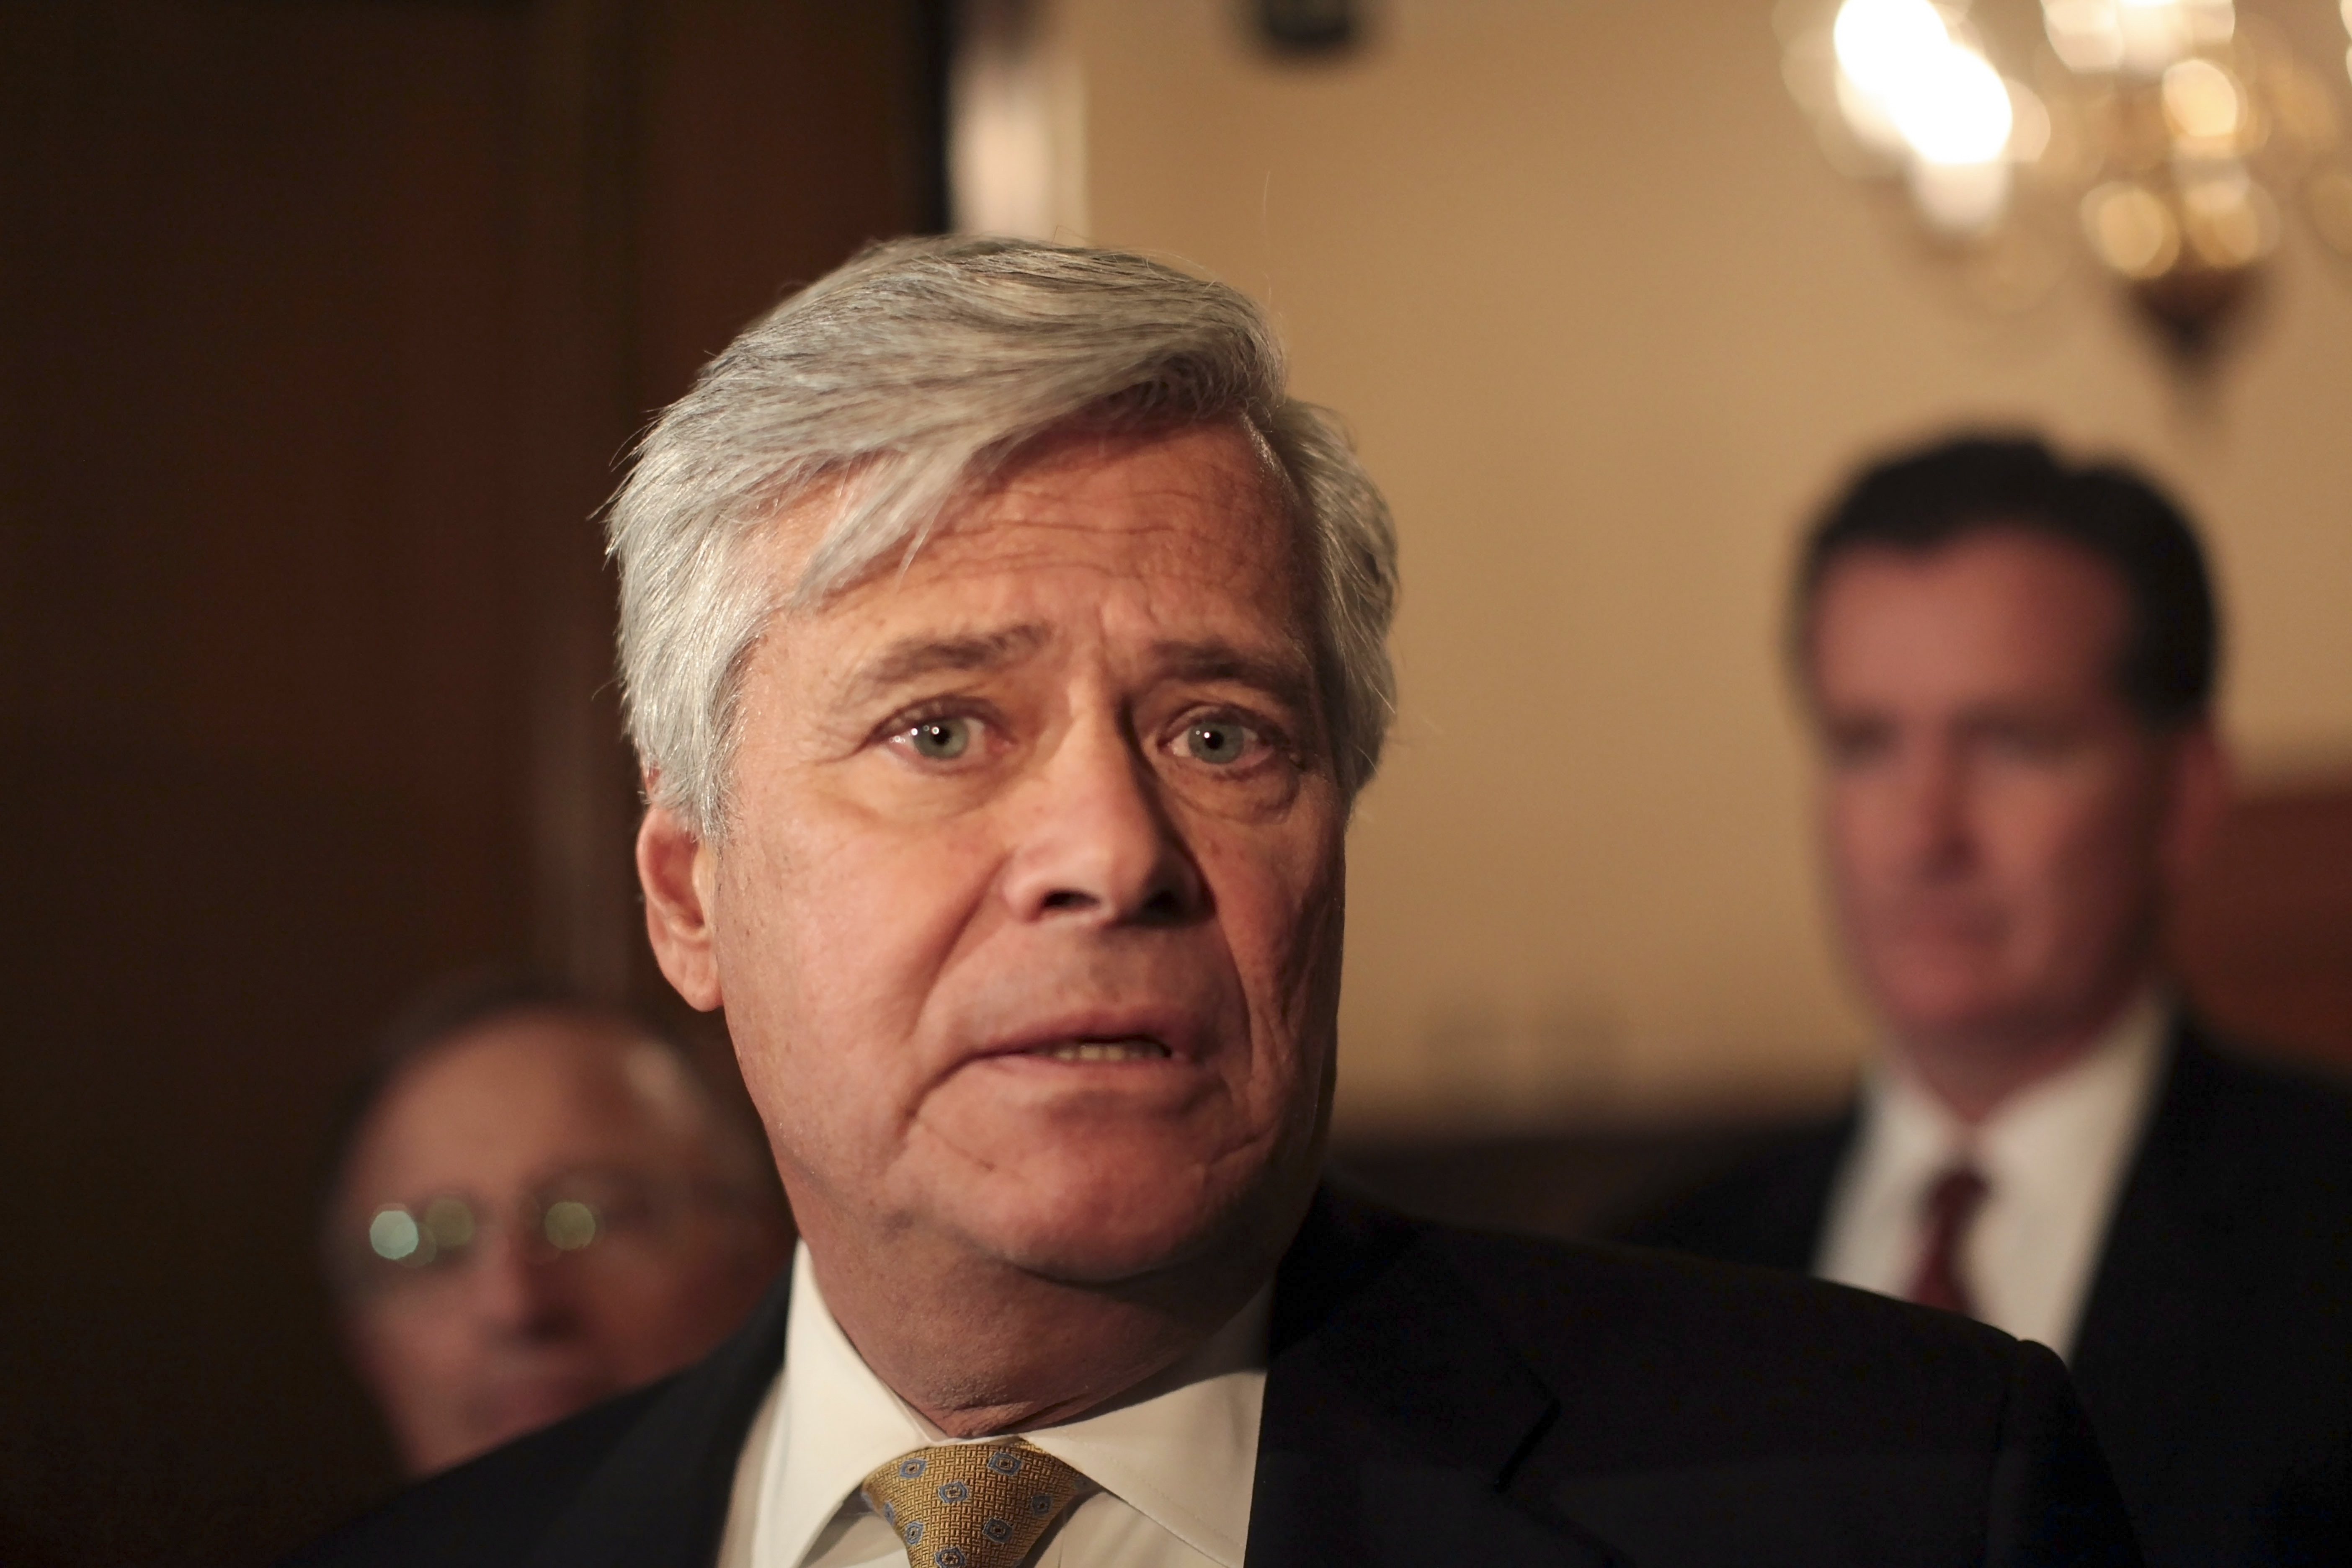 Dean Skelos, a Long Island Republican once the majority leader of the New York State Senate, was found guilty of corruption Dec. 11. (New York Times)